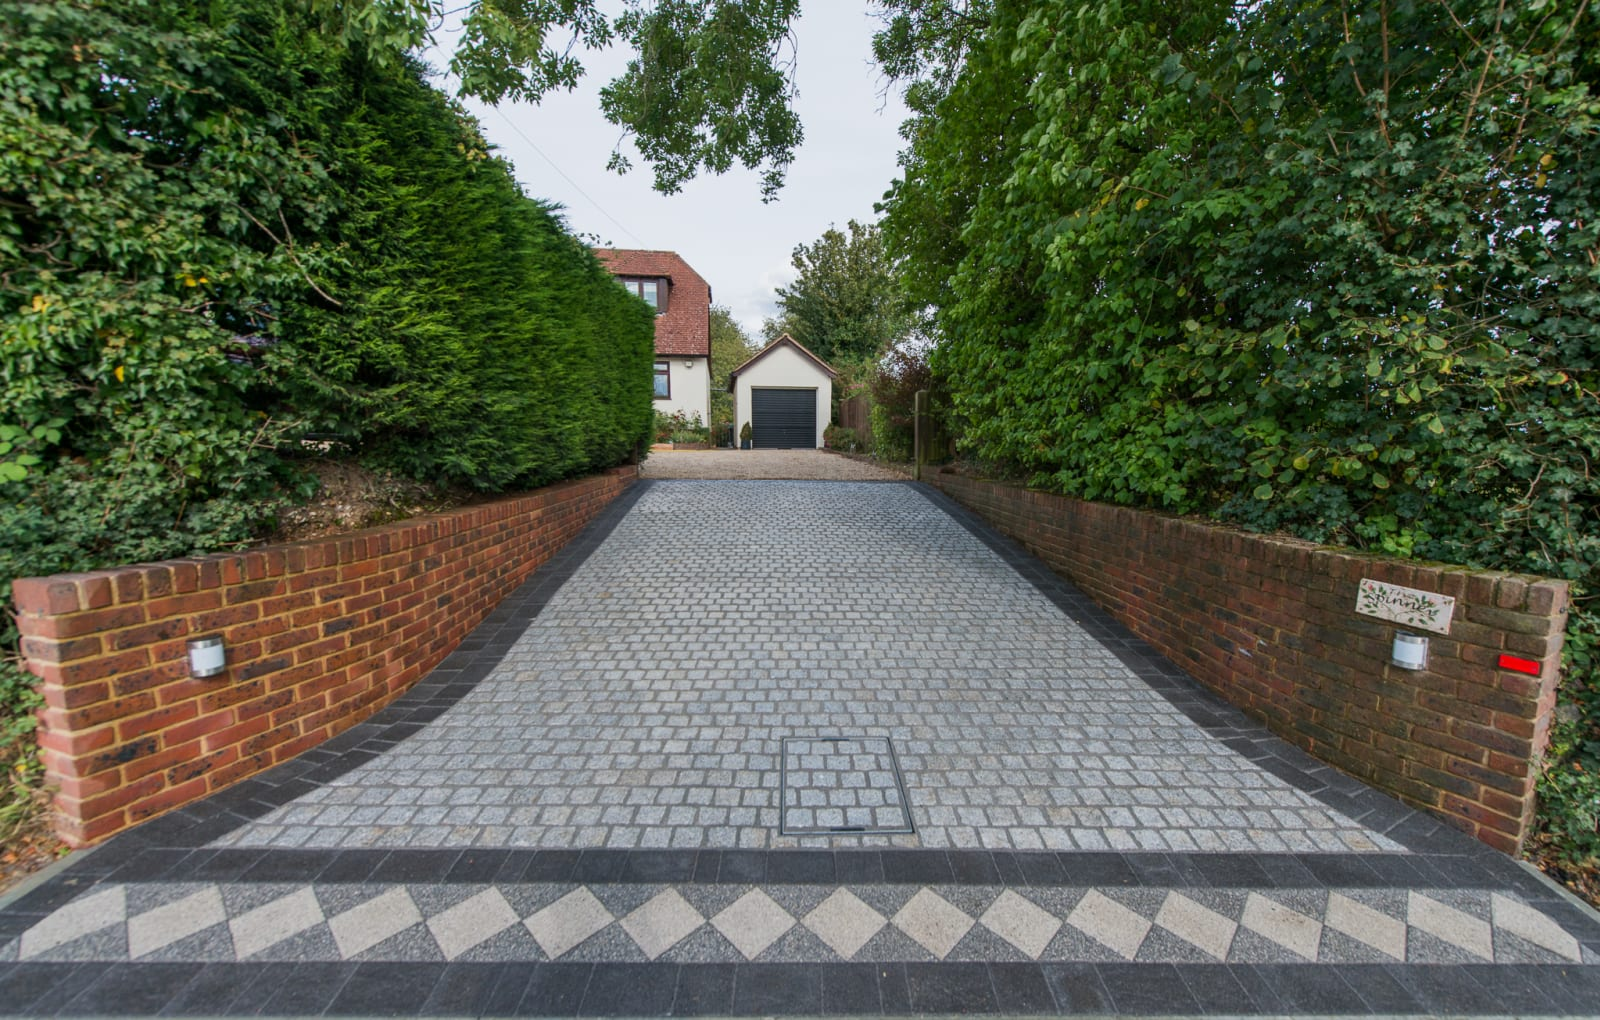 Marshalls Sawn Granite Setts and Drivesett Argent in Light and Dark block paving